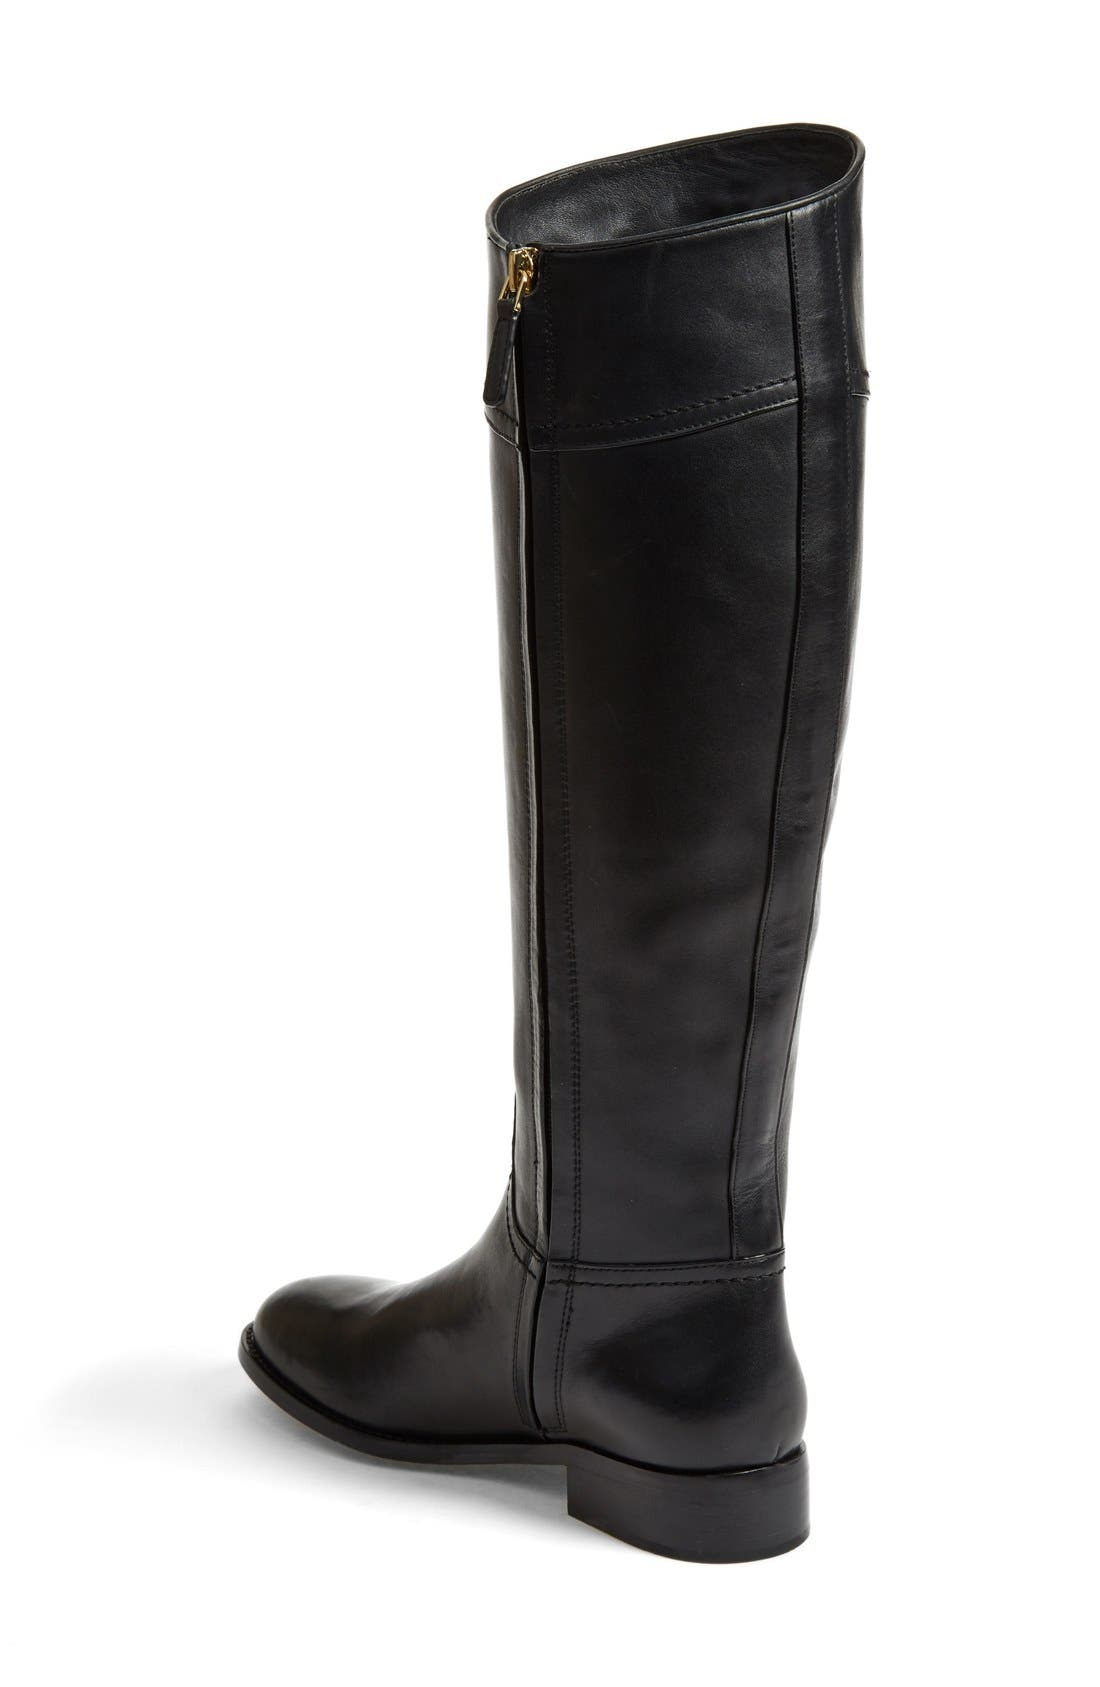 Alternate Image 2  - Tory Burch 'Ashlynn' Wide Calf Riding Boot (Women)